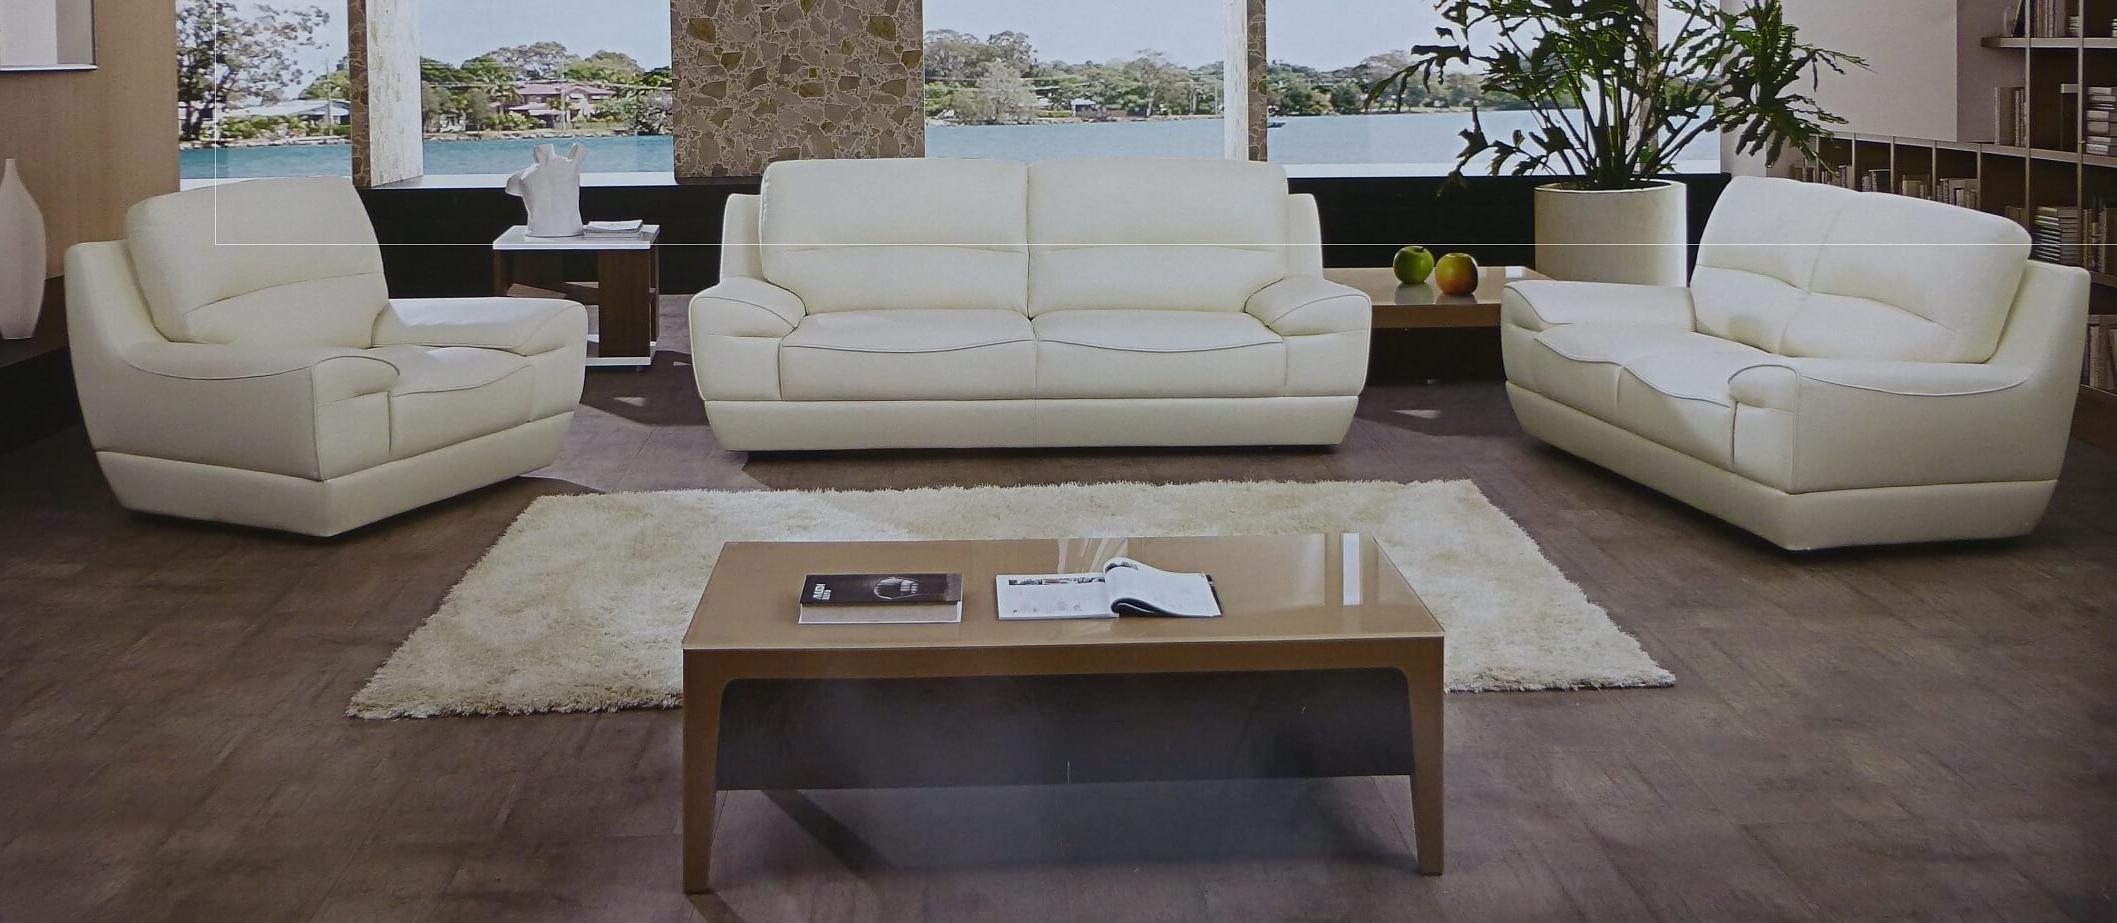 Off White Leather Sofas Throughout Favorite Sofa: Designs White Sofa And Loveseat White Fabric Sofa, White (View 5 of 15)